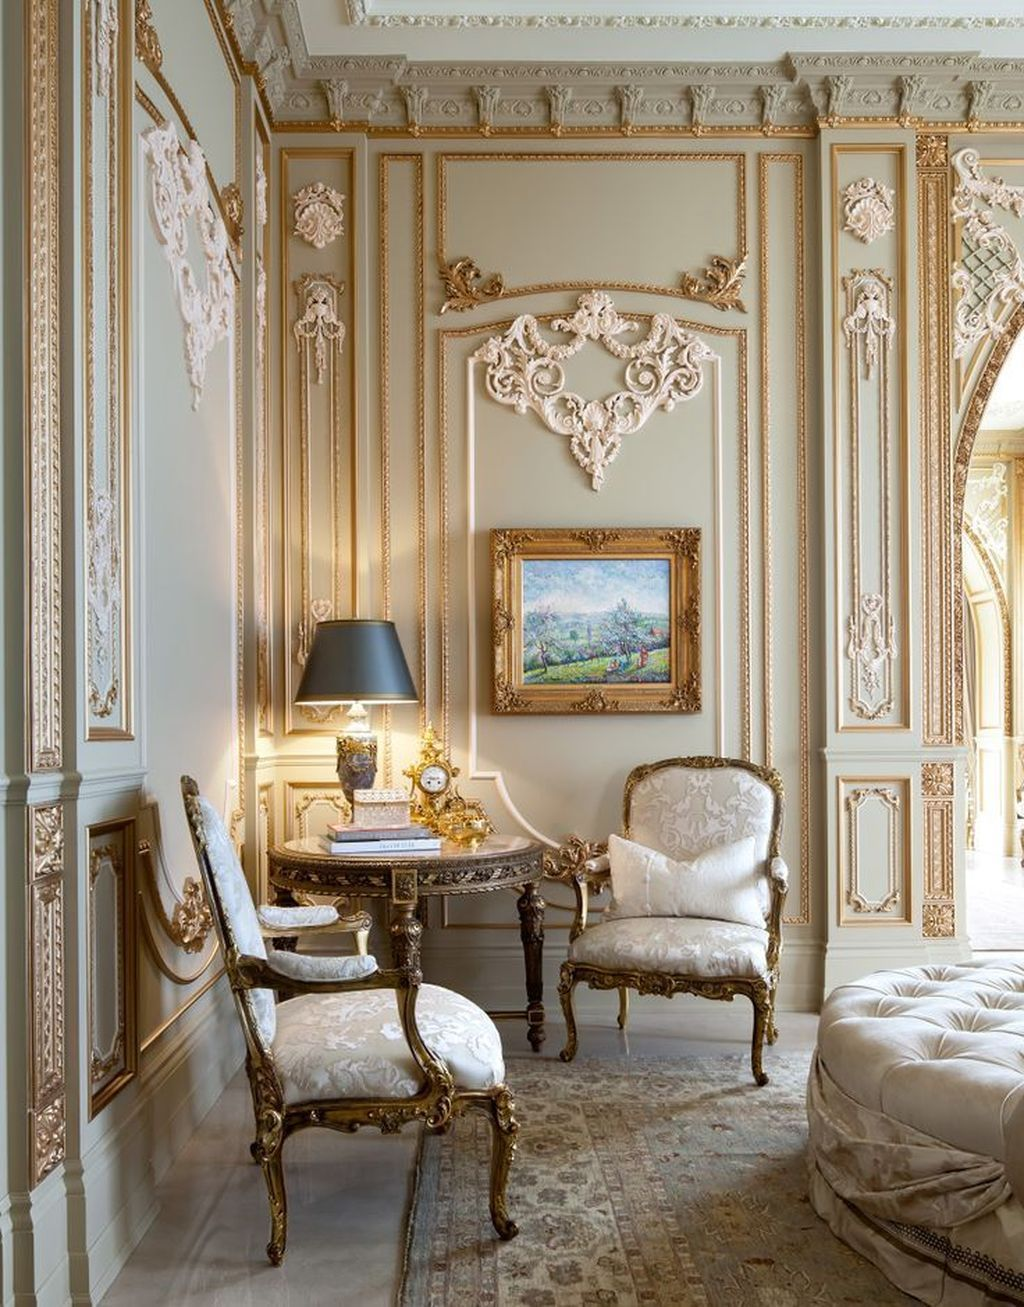 Awesome 36 unique french country decor ideas more at https homishome